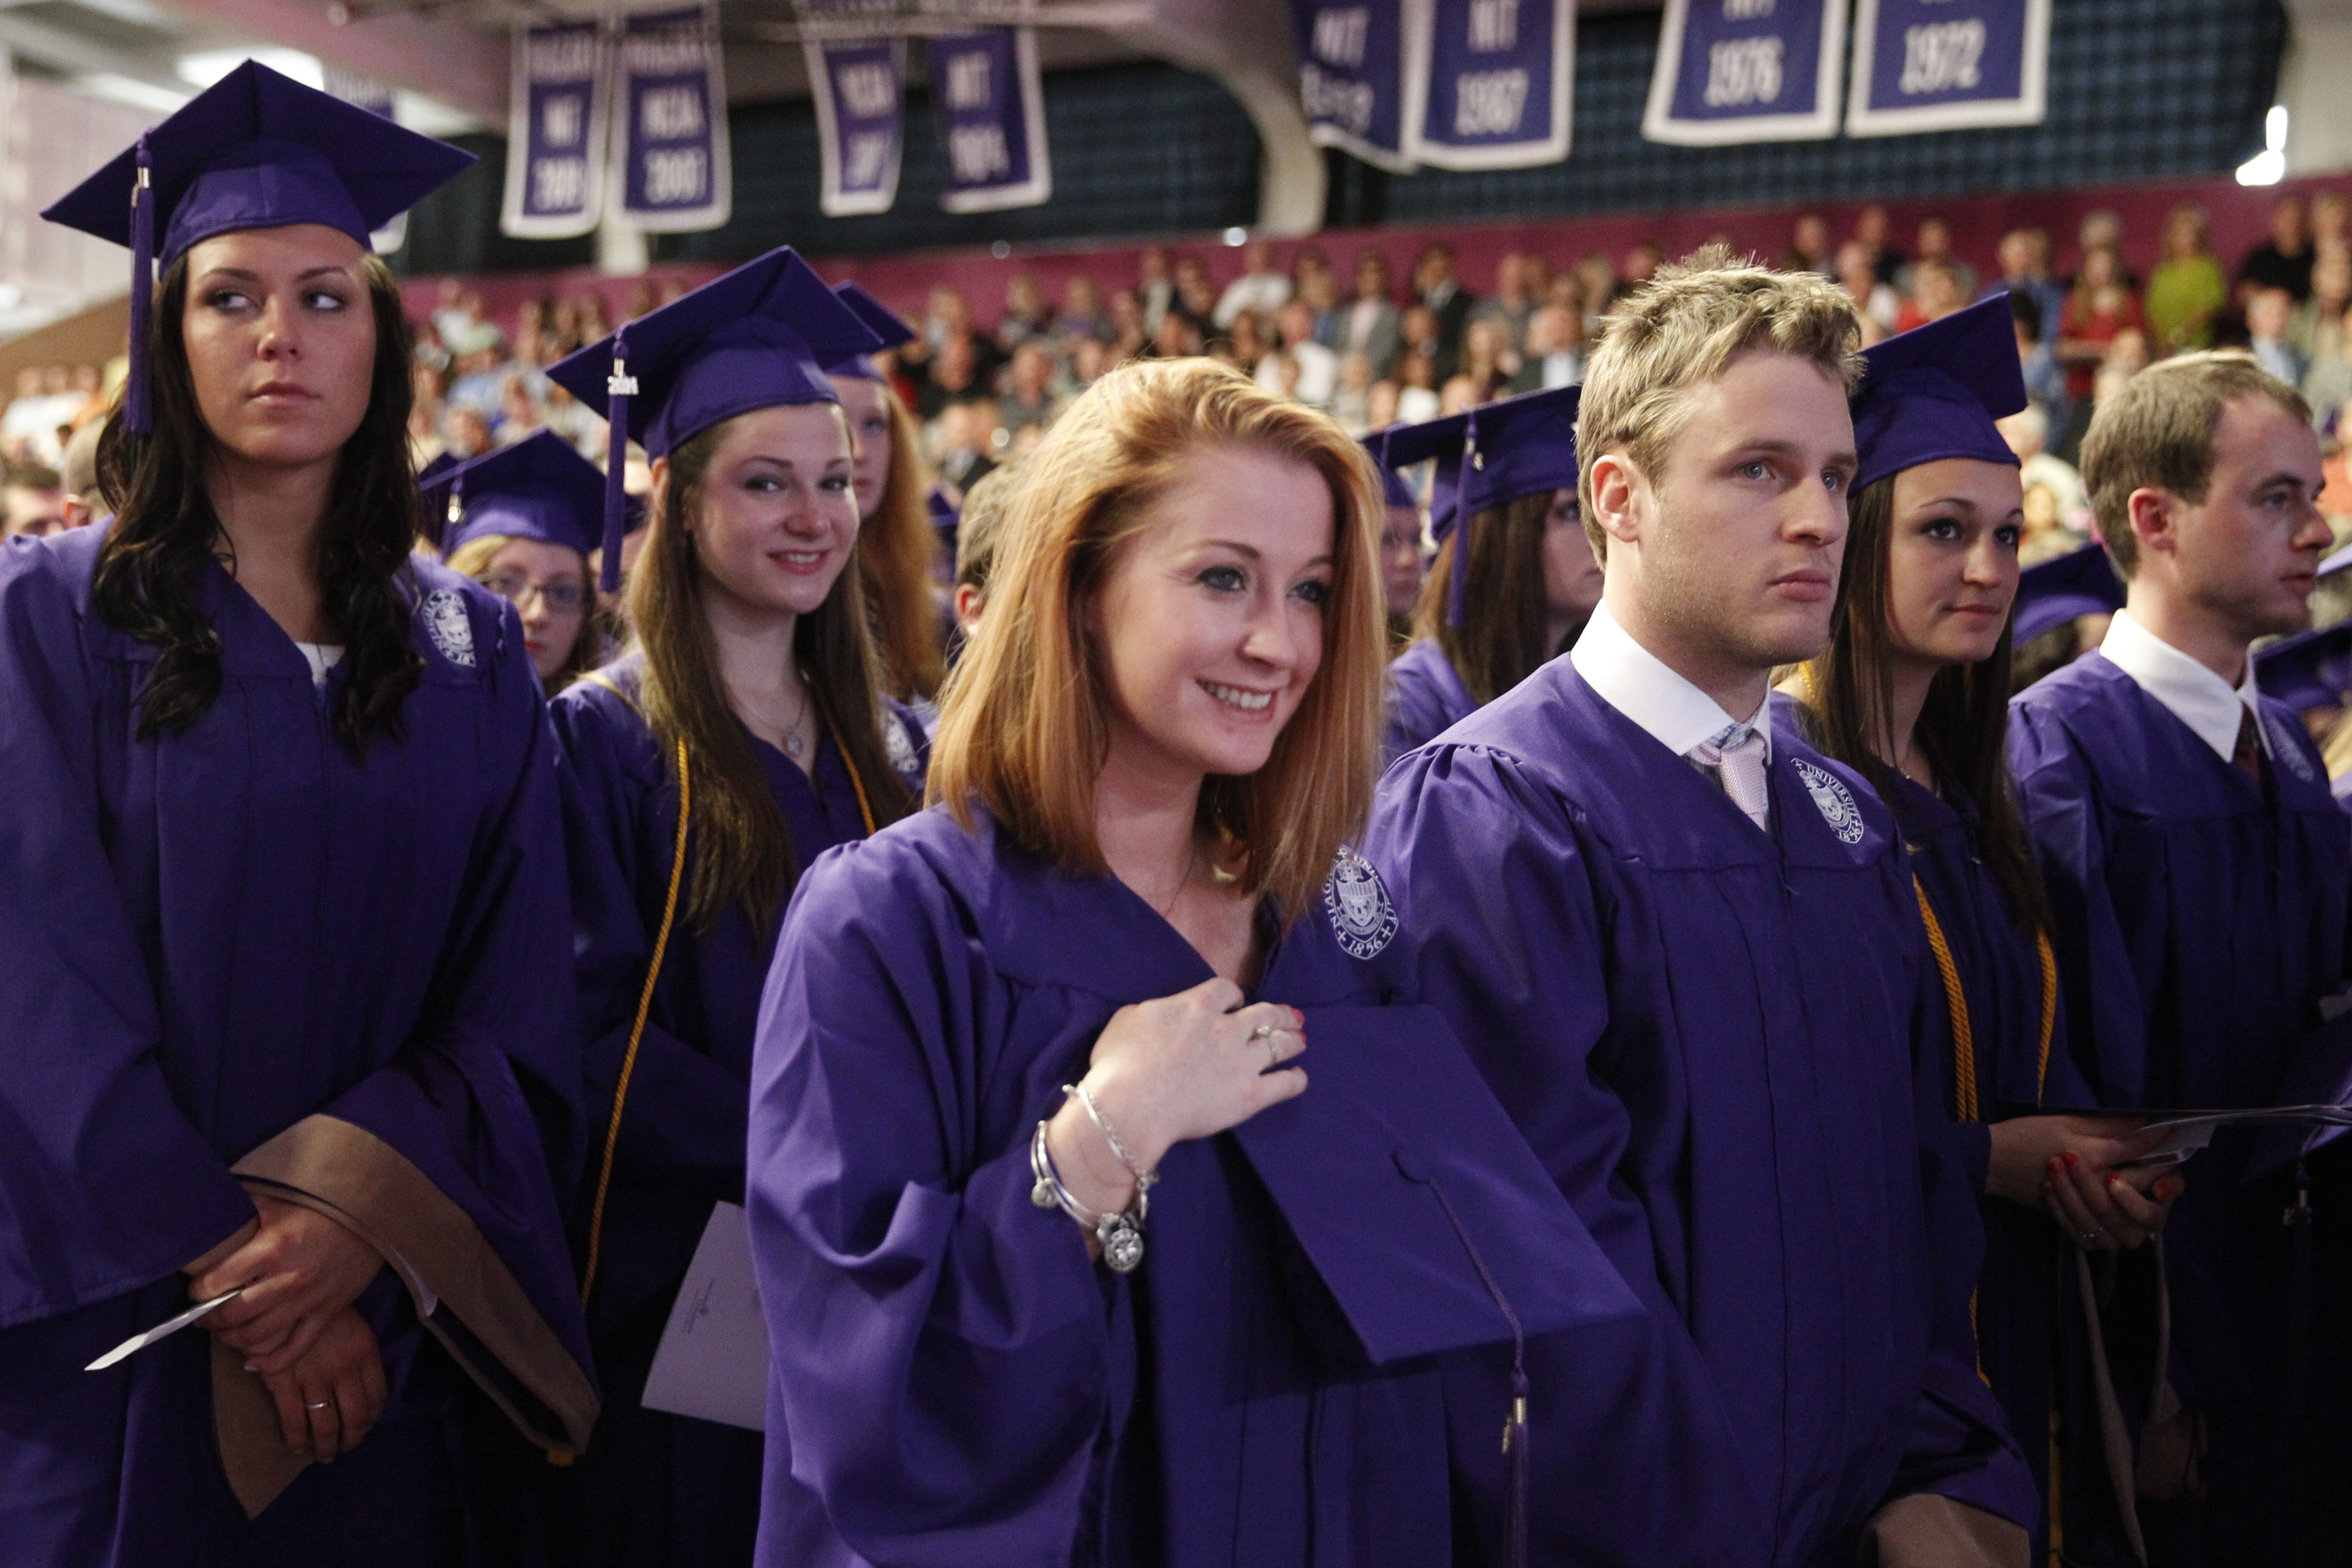 Courtney Dolan, foreground, of Rochester, stands with classmates Saturday at Niagara University College of Hospitality and Tourism Management's commencement ceremonies. Hilbert College, Niagara County Community College and Houghton College also held commencements Saturday. See more photos at buffalonews.com/galleries.